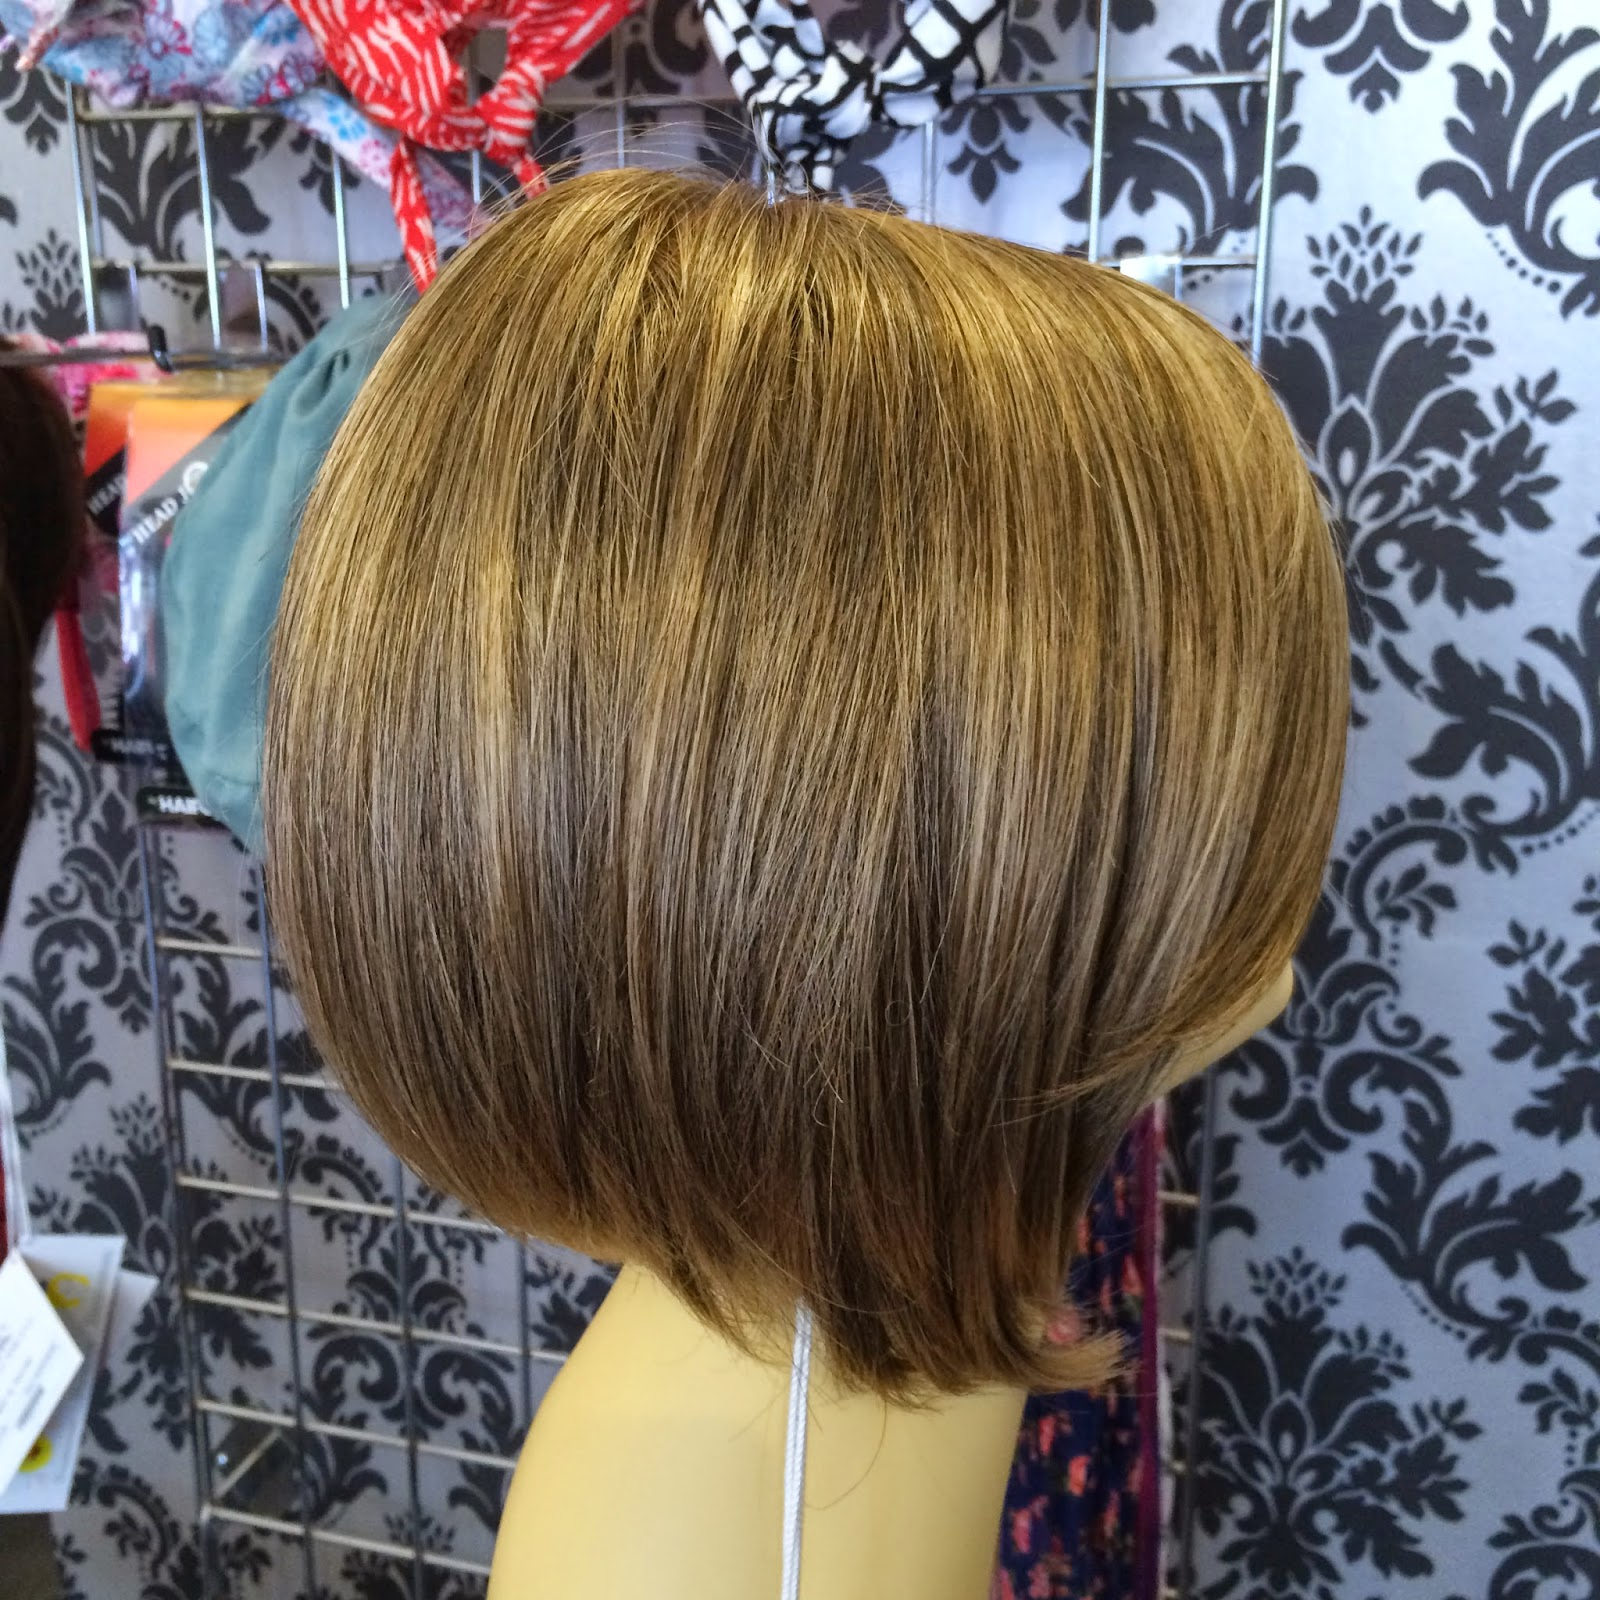 http://www.aspire-hair.co.uk/ourshop/prod_1096418-Codi-Mono-Wig.html